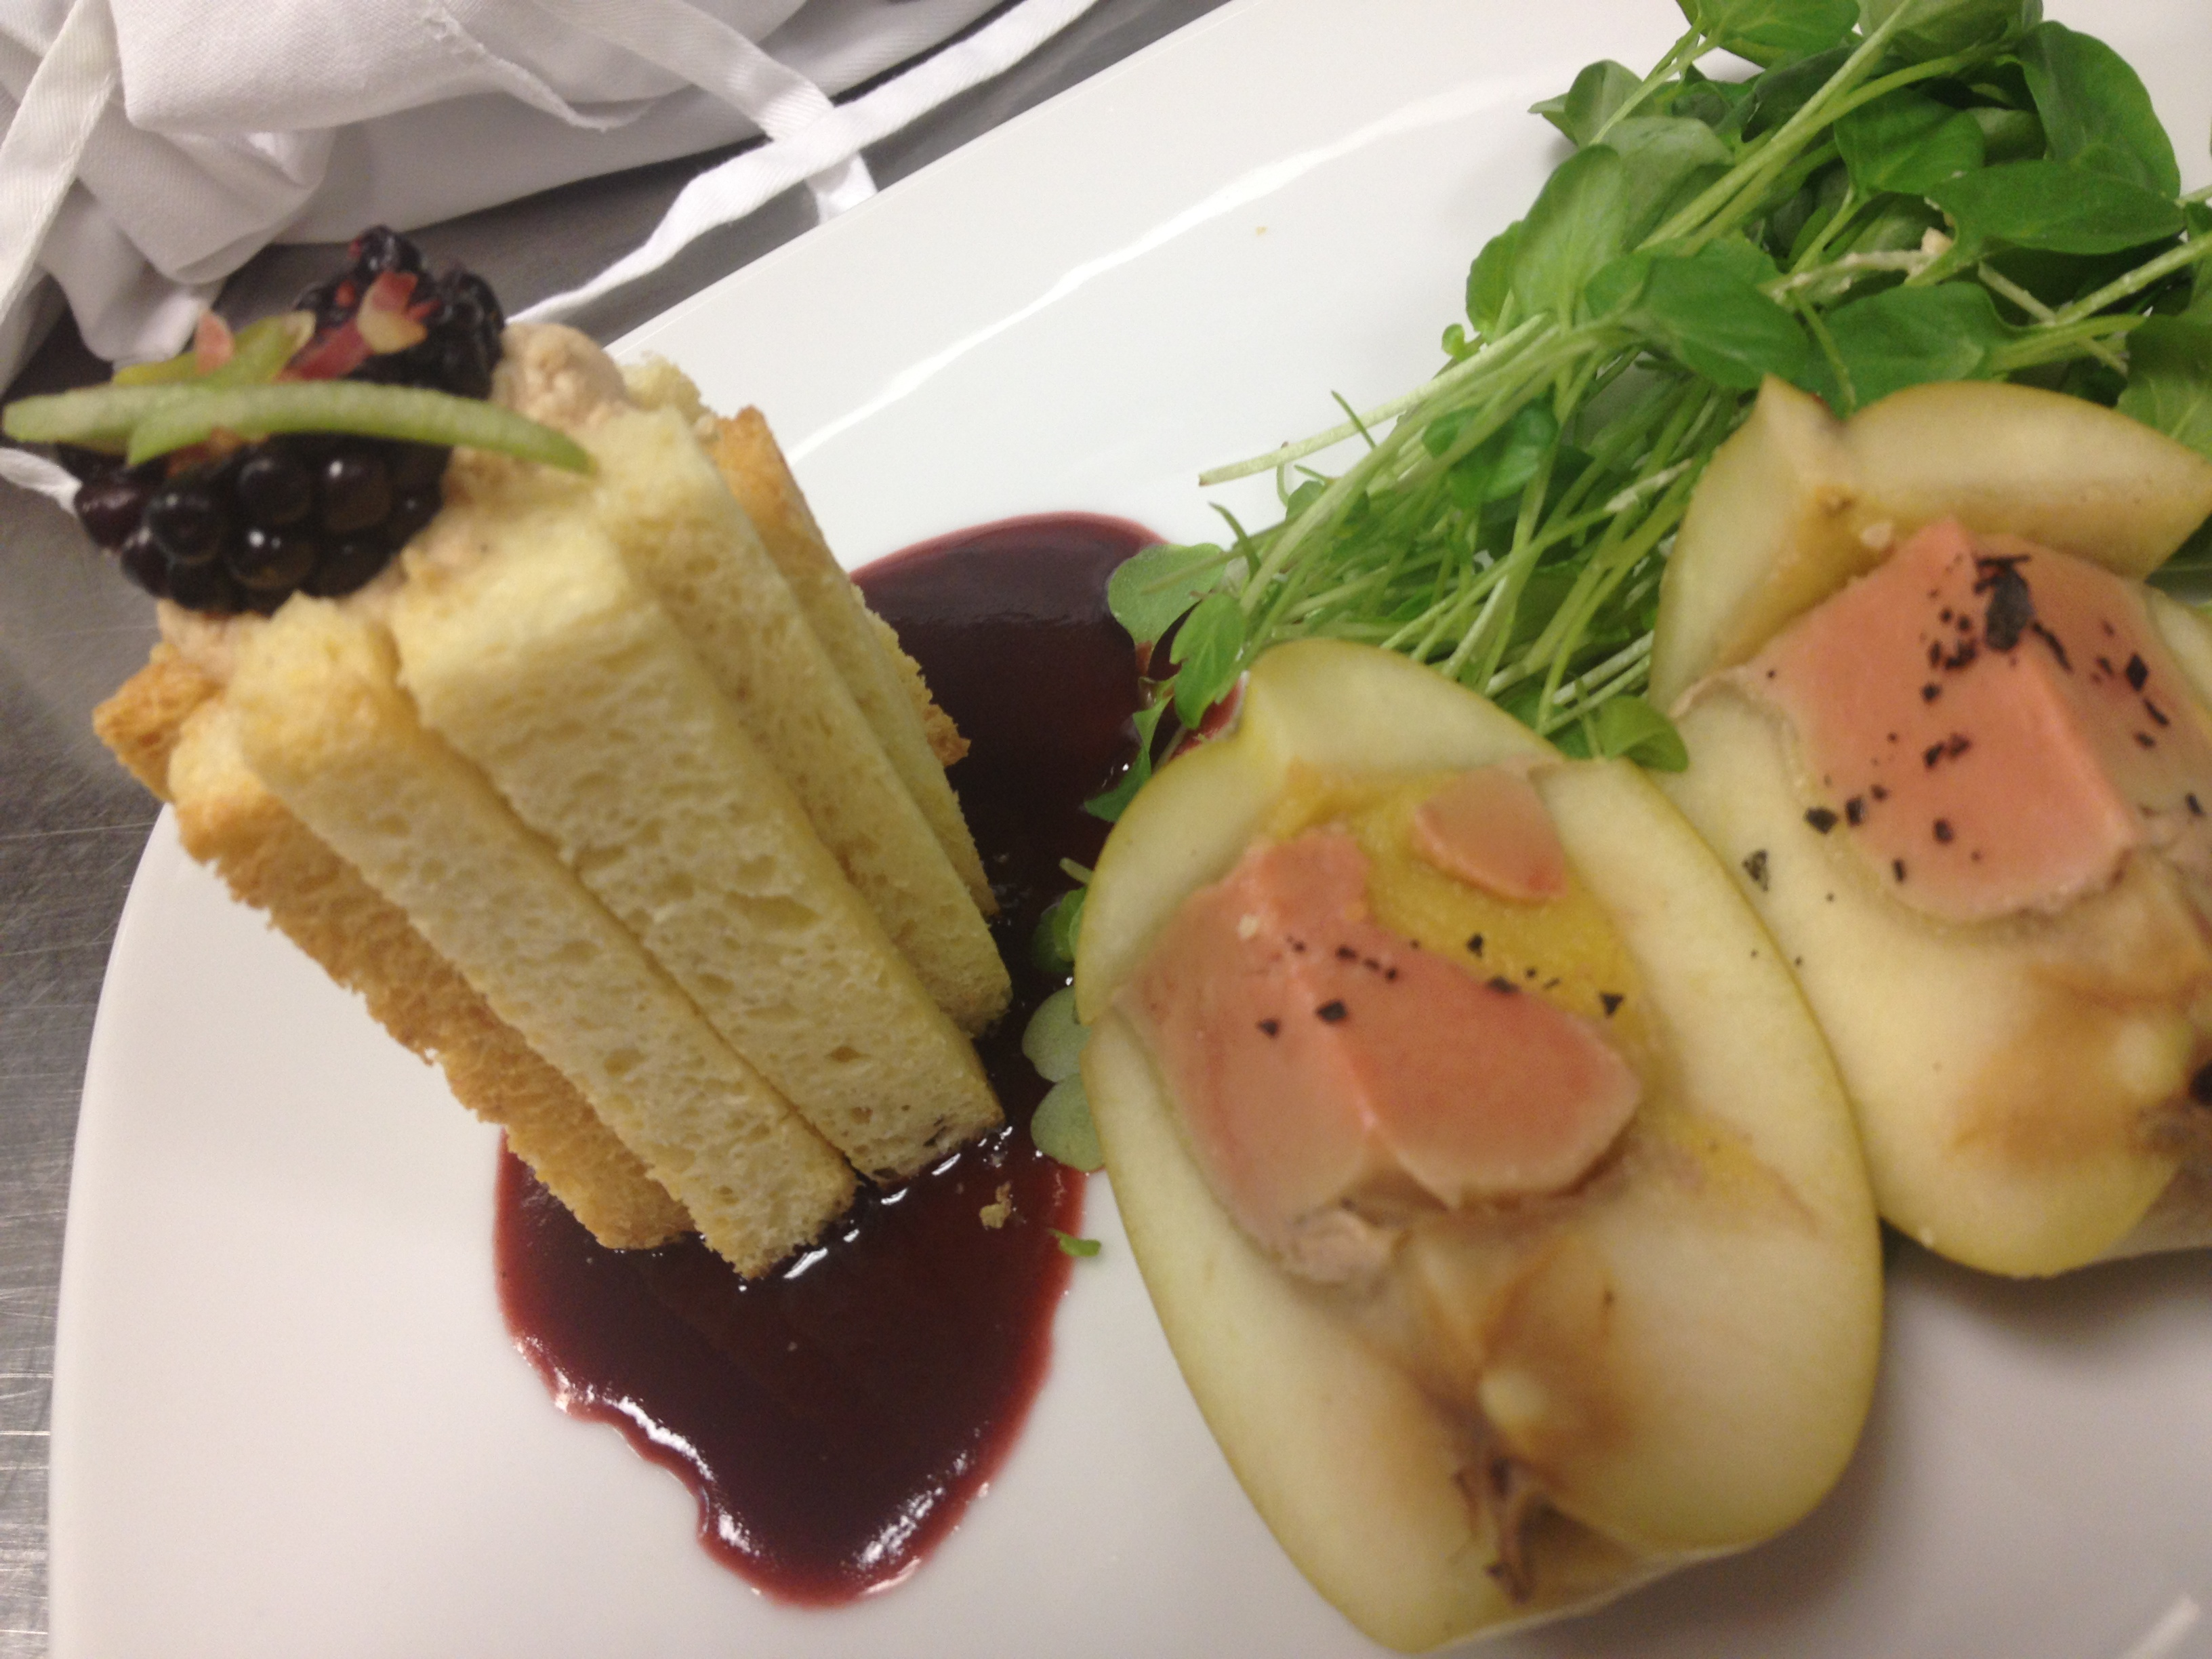 Apple Terrine of Foie Gras